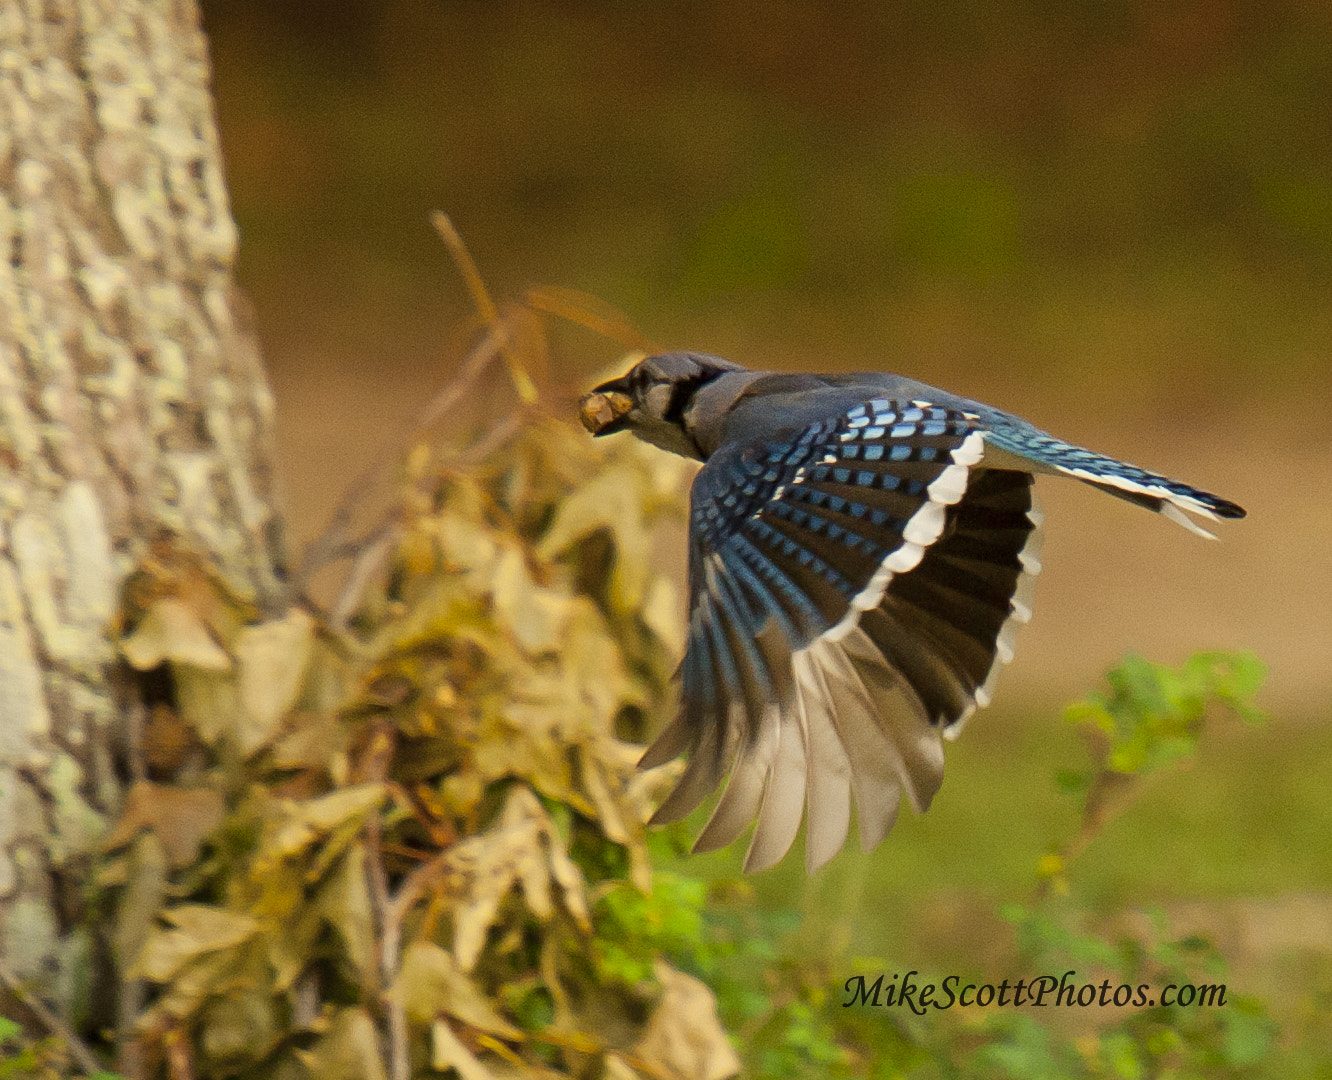 Photograph Hungry Jay by MikeScottPhotos  on 500px